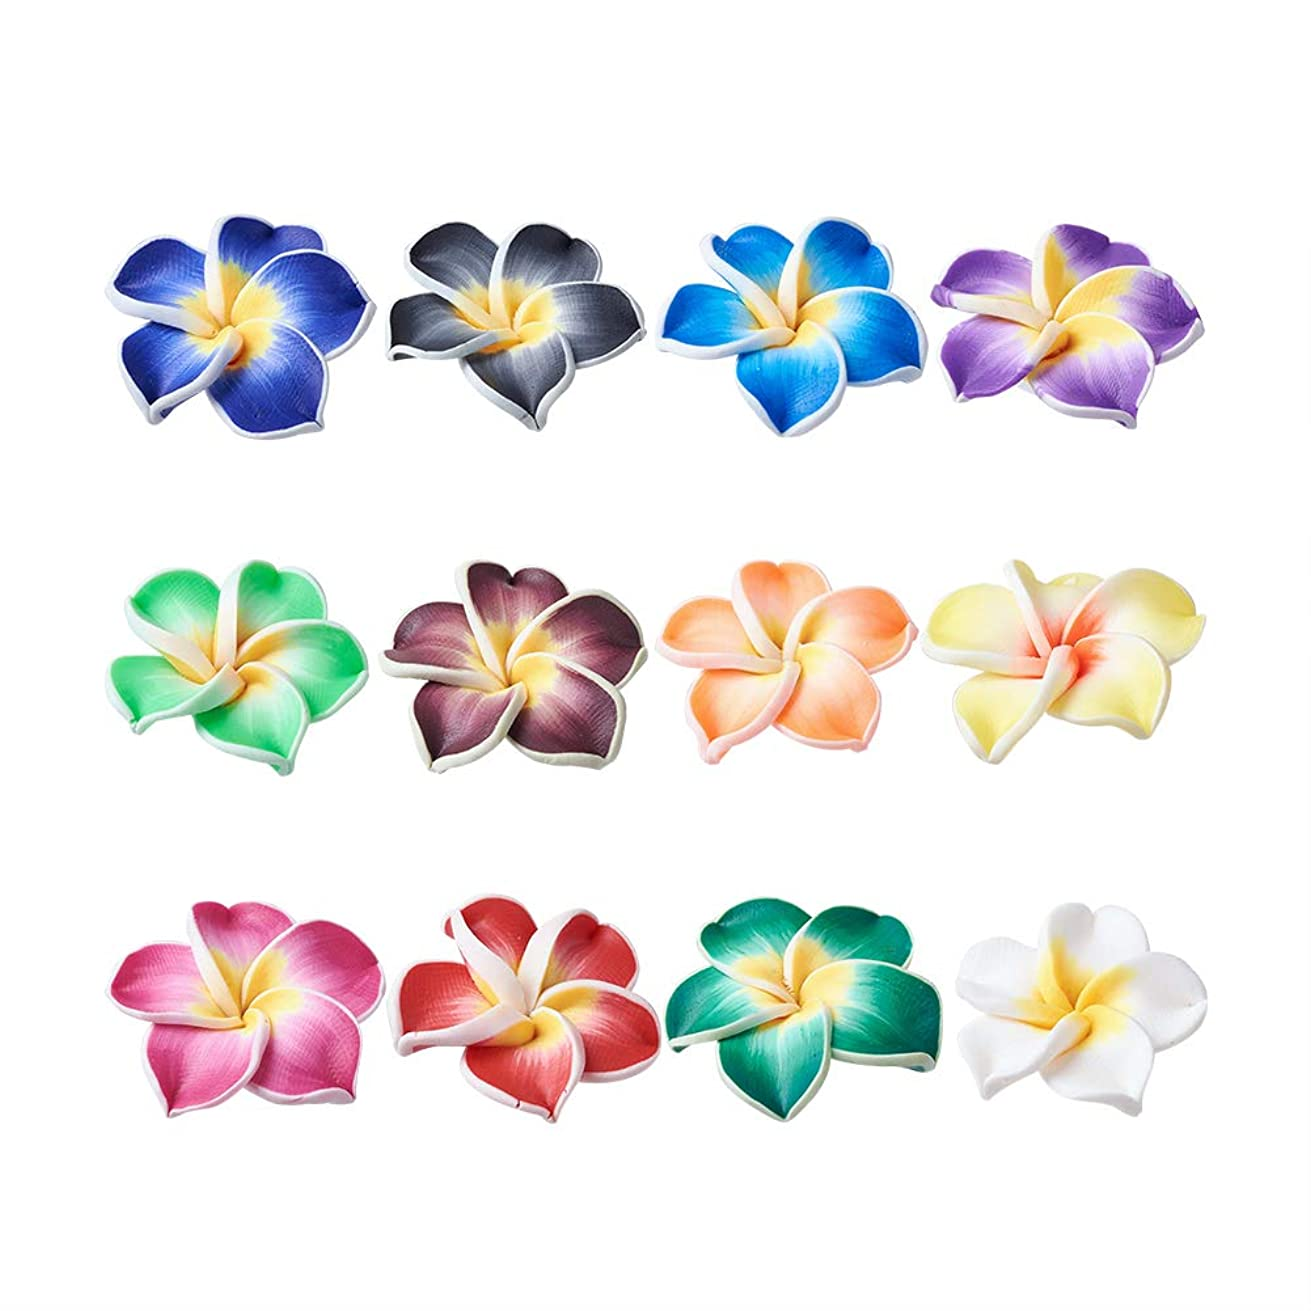 Craftdady 200Pcs 20x10mm Mixed Colors Handmade Polymer Clay Plumeria Flower Beads DIY Jewelry Necklace Bracelet Earring Craft Making Colorful Side Drilled Spacer Beads with 2mm Hole